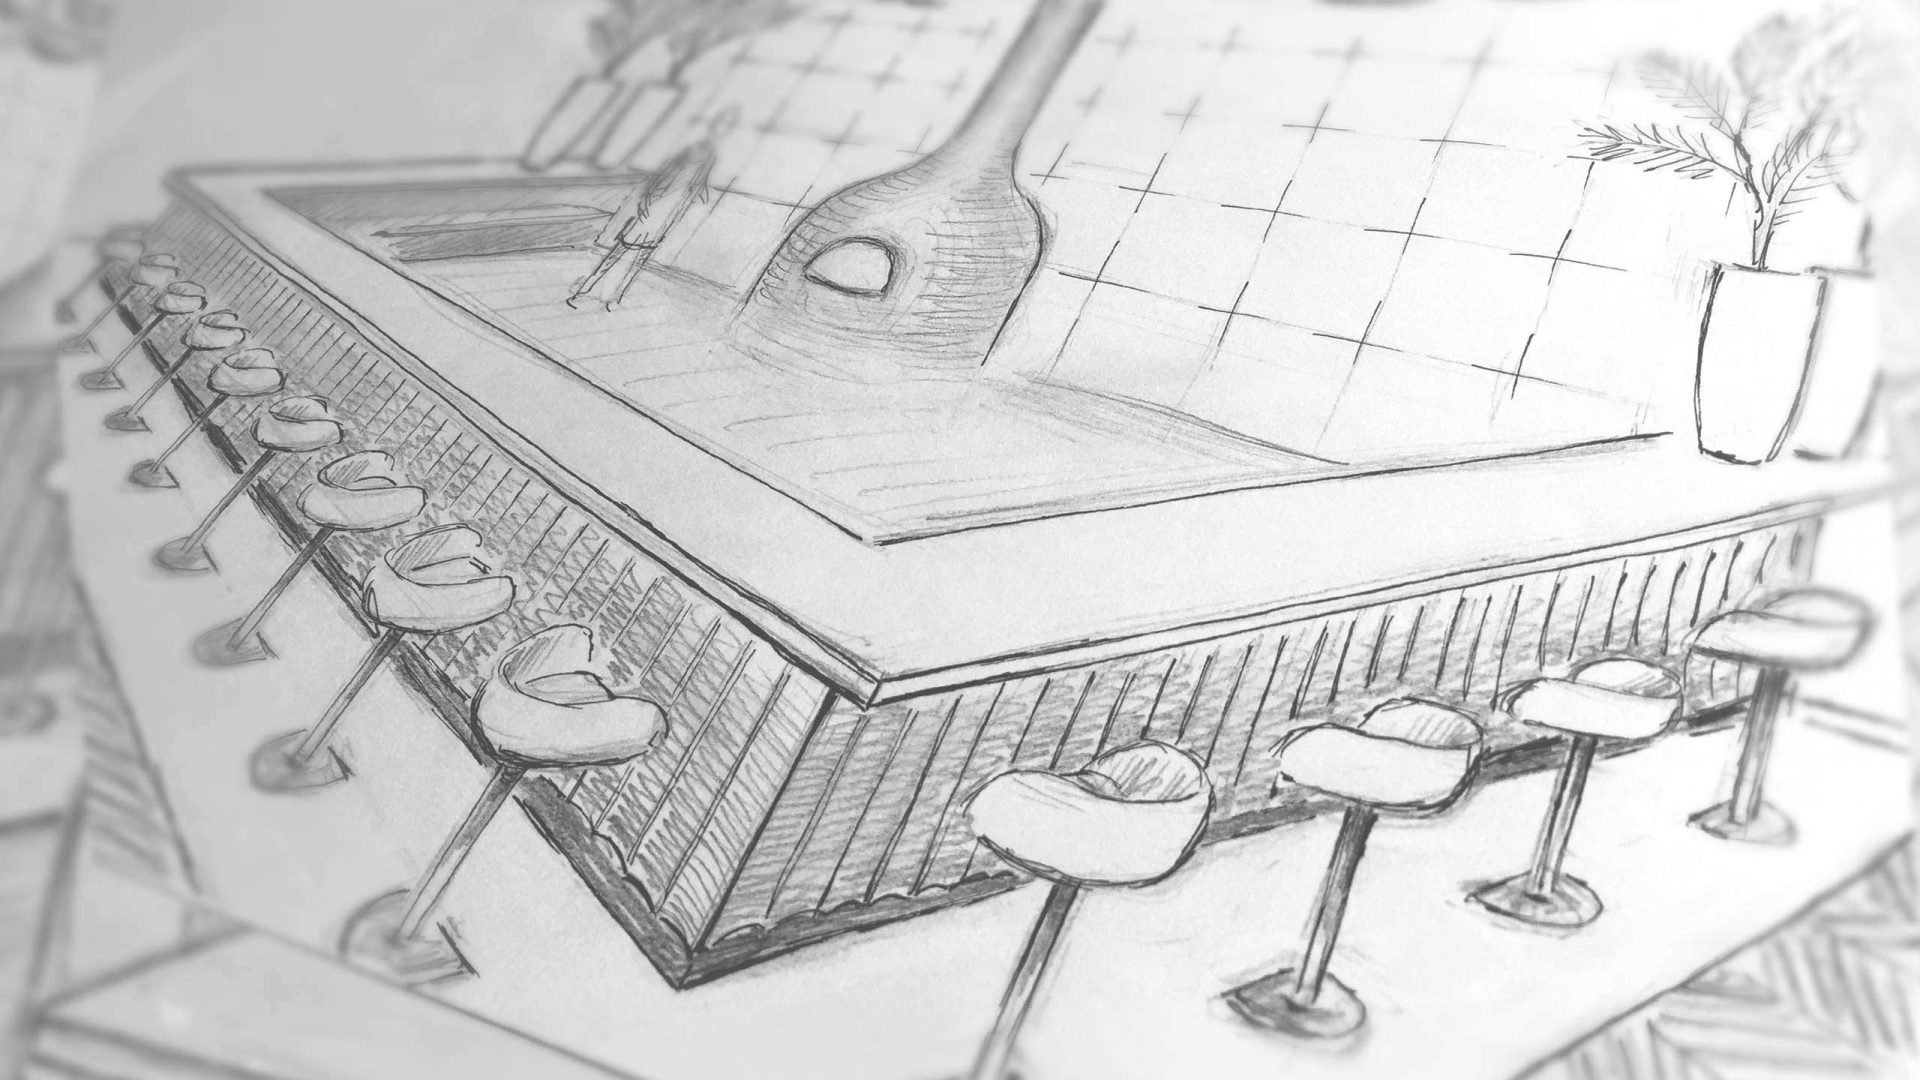 Sketch for a restaurant design by Liqui showing bar seating and custom counter.